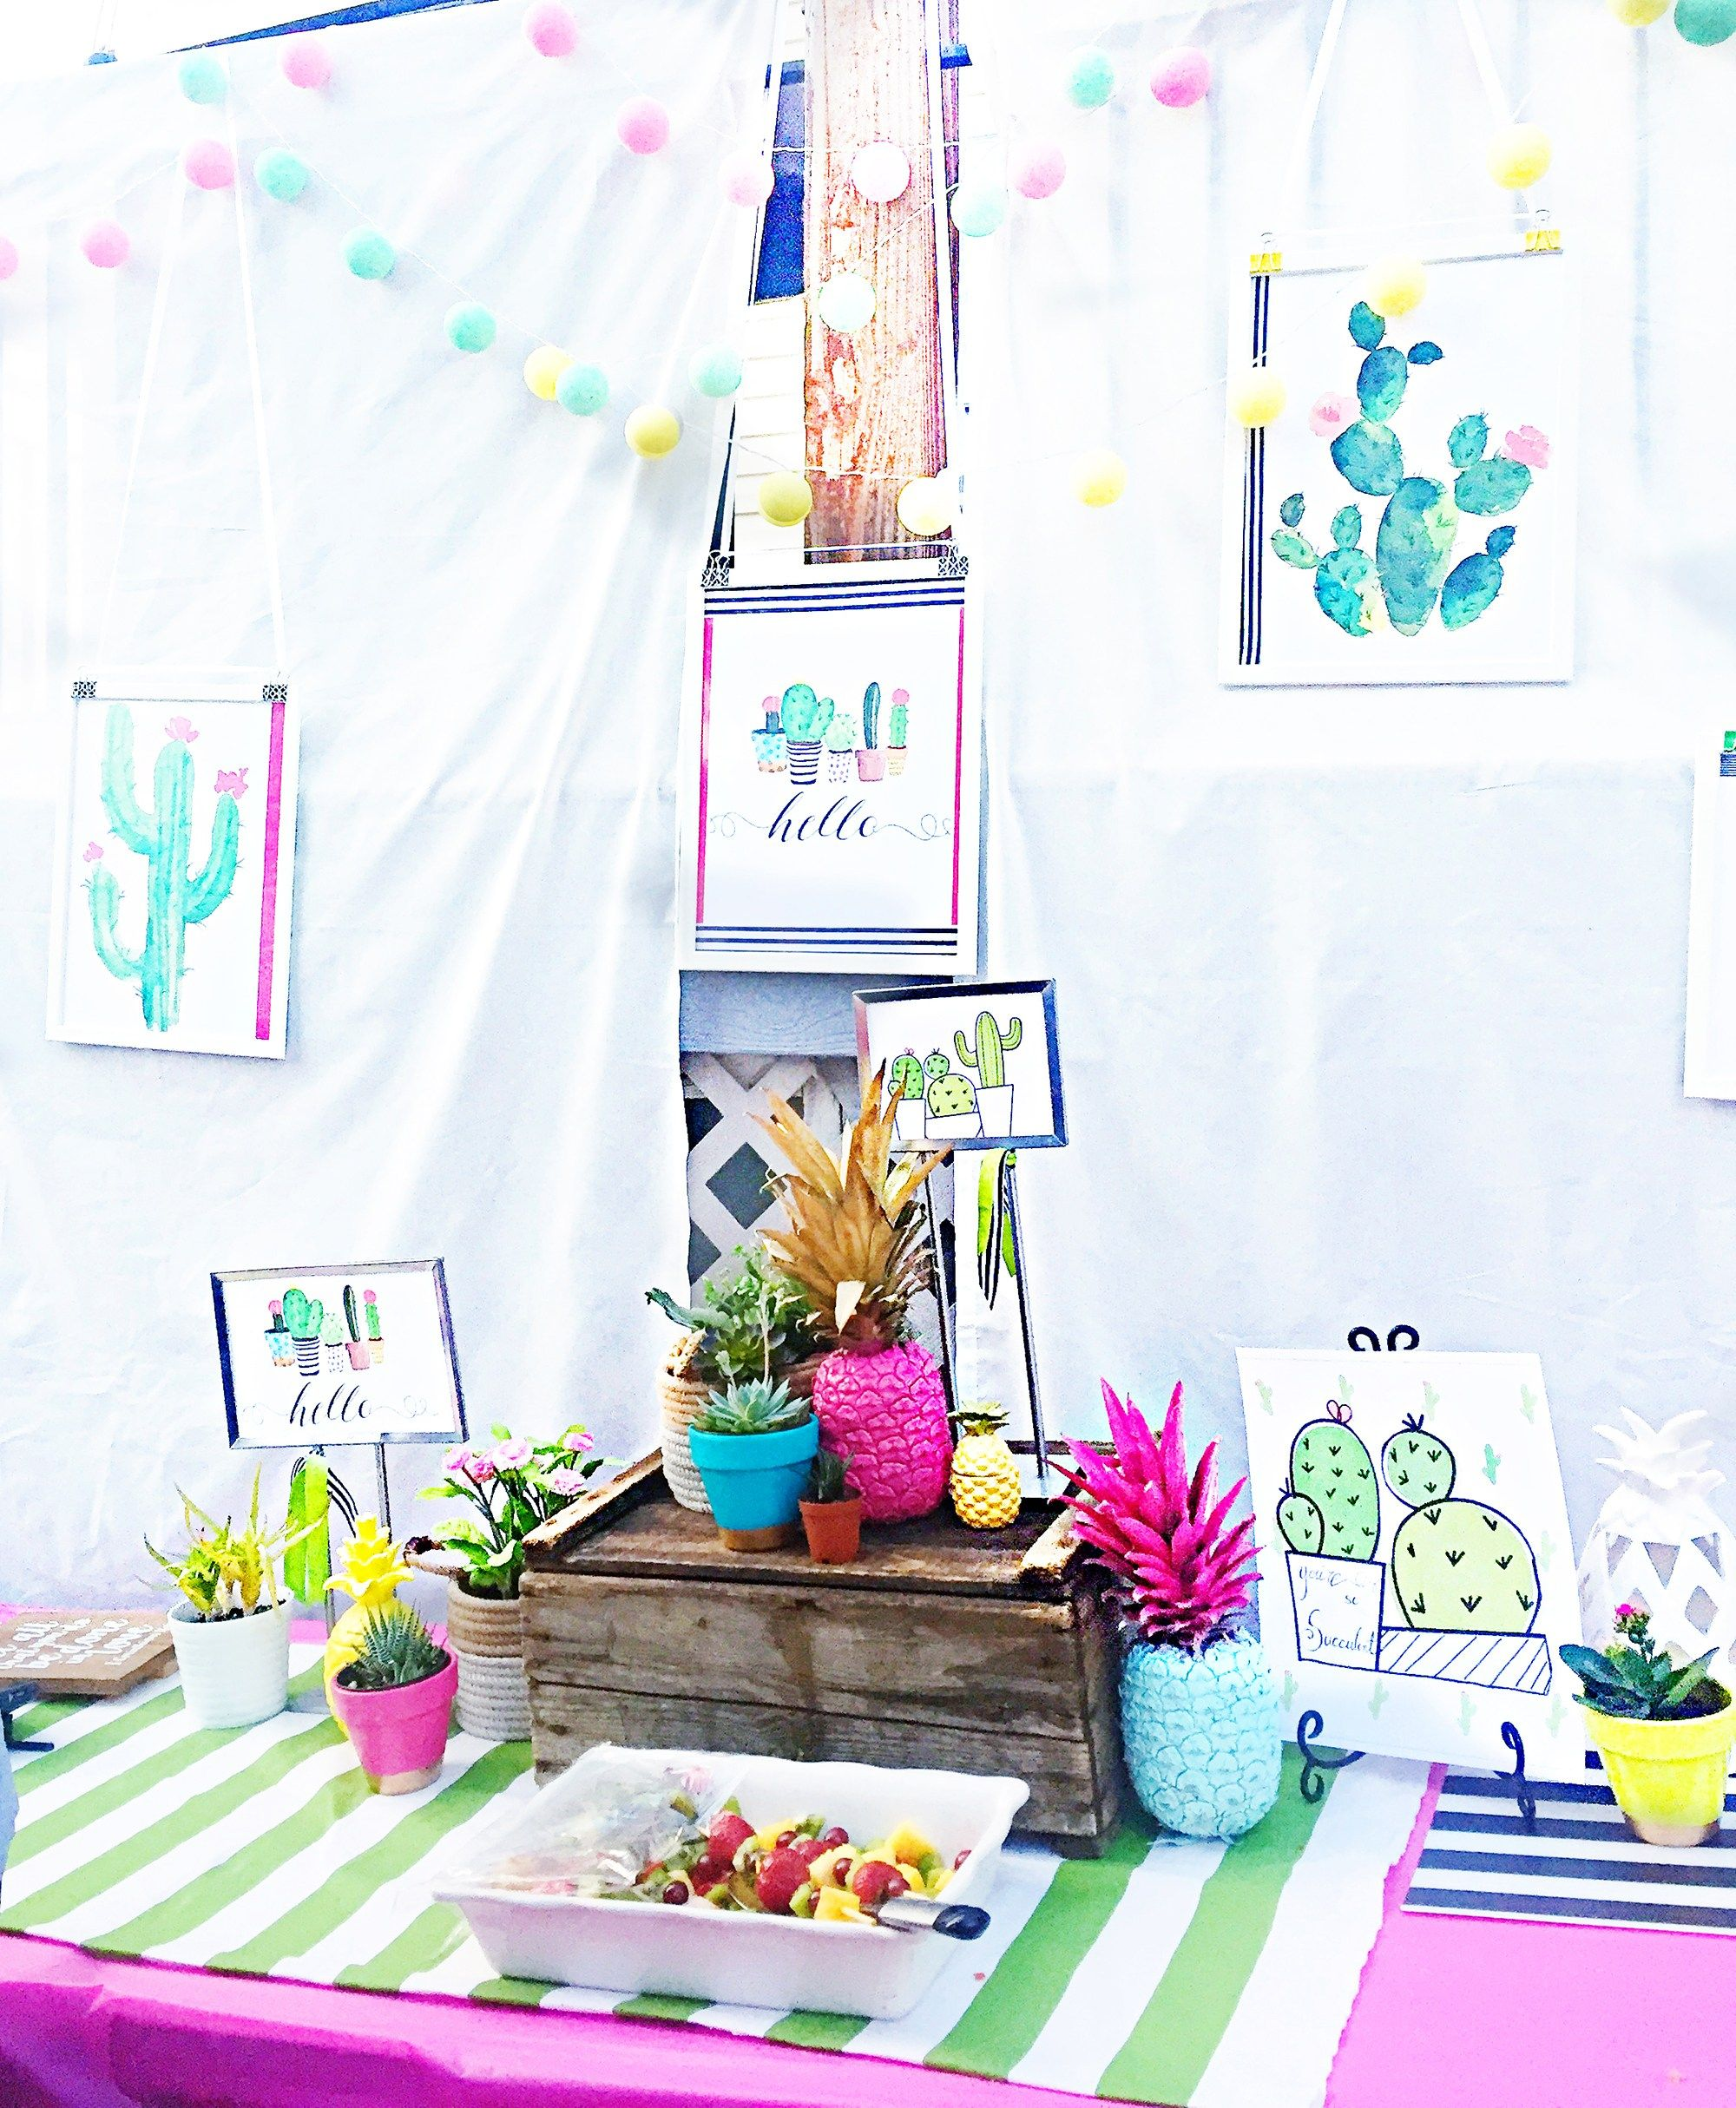 Tropical wedding shower | Summer bridal showers, Summer weddings and ...